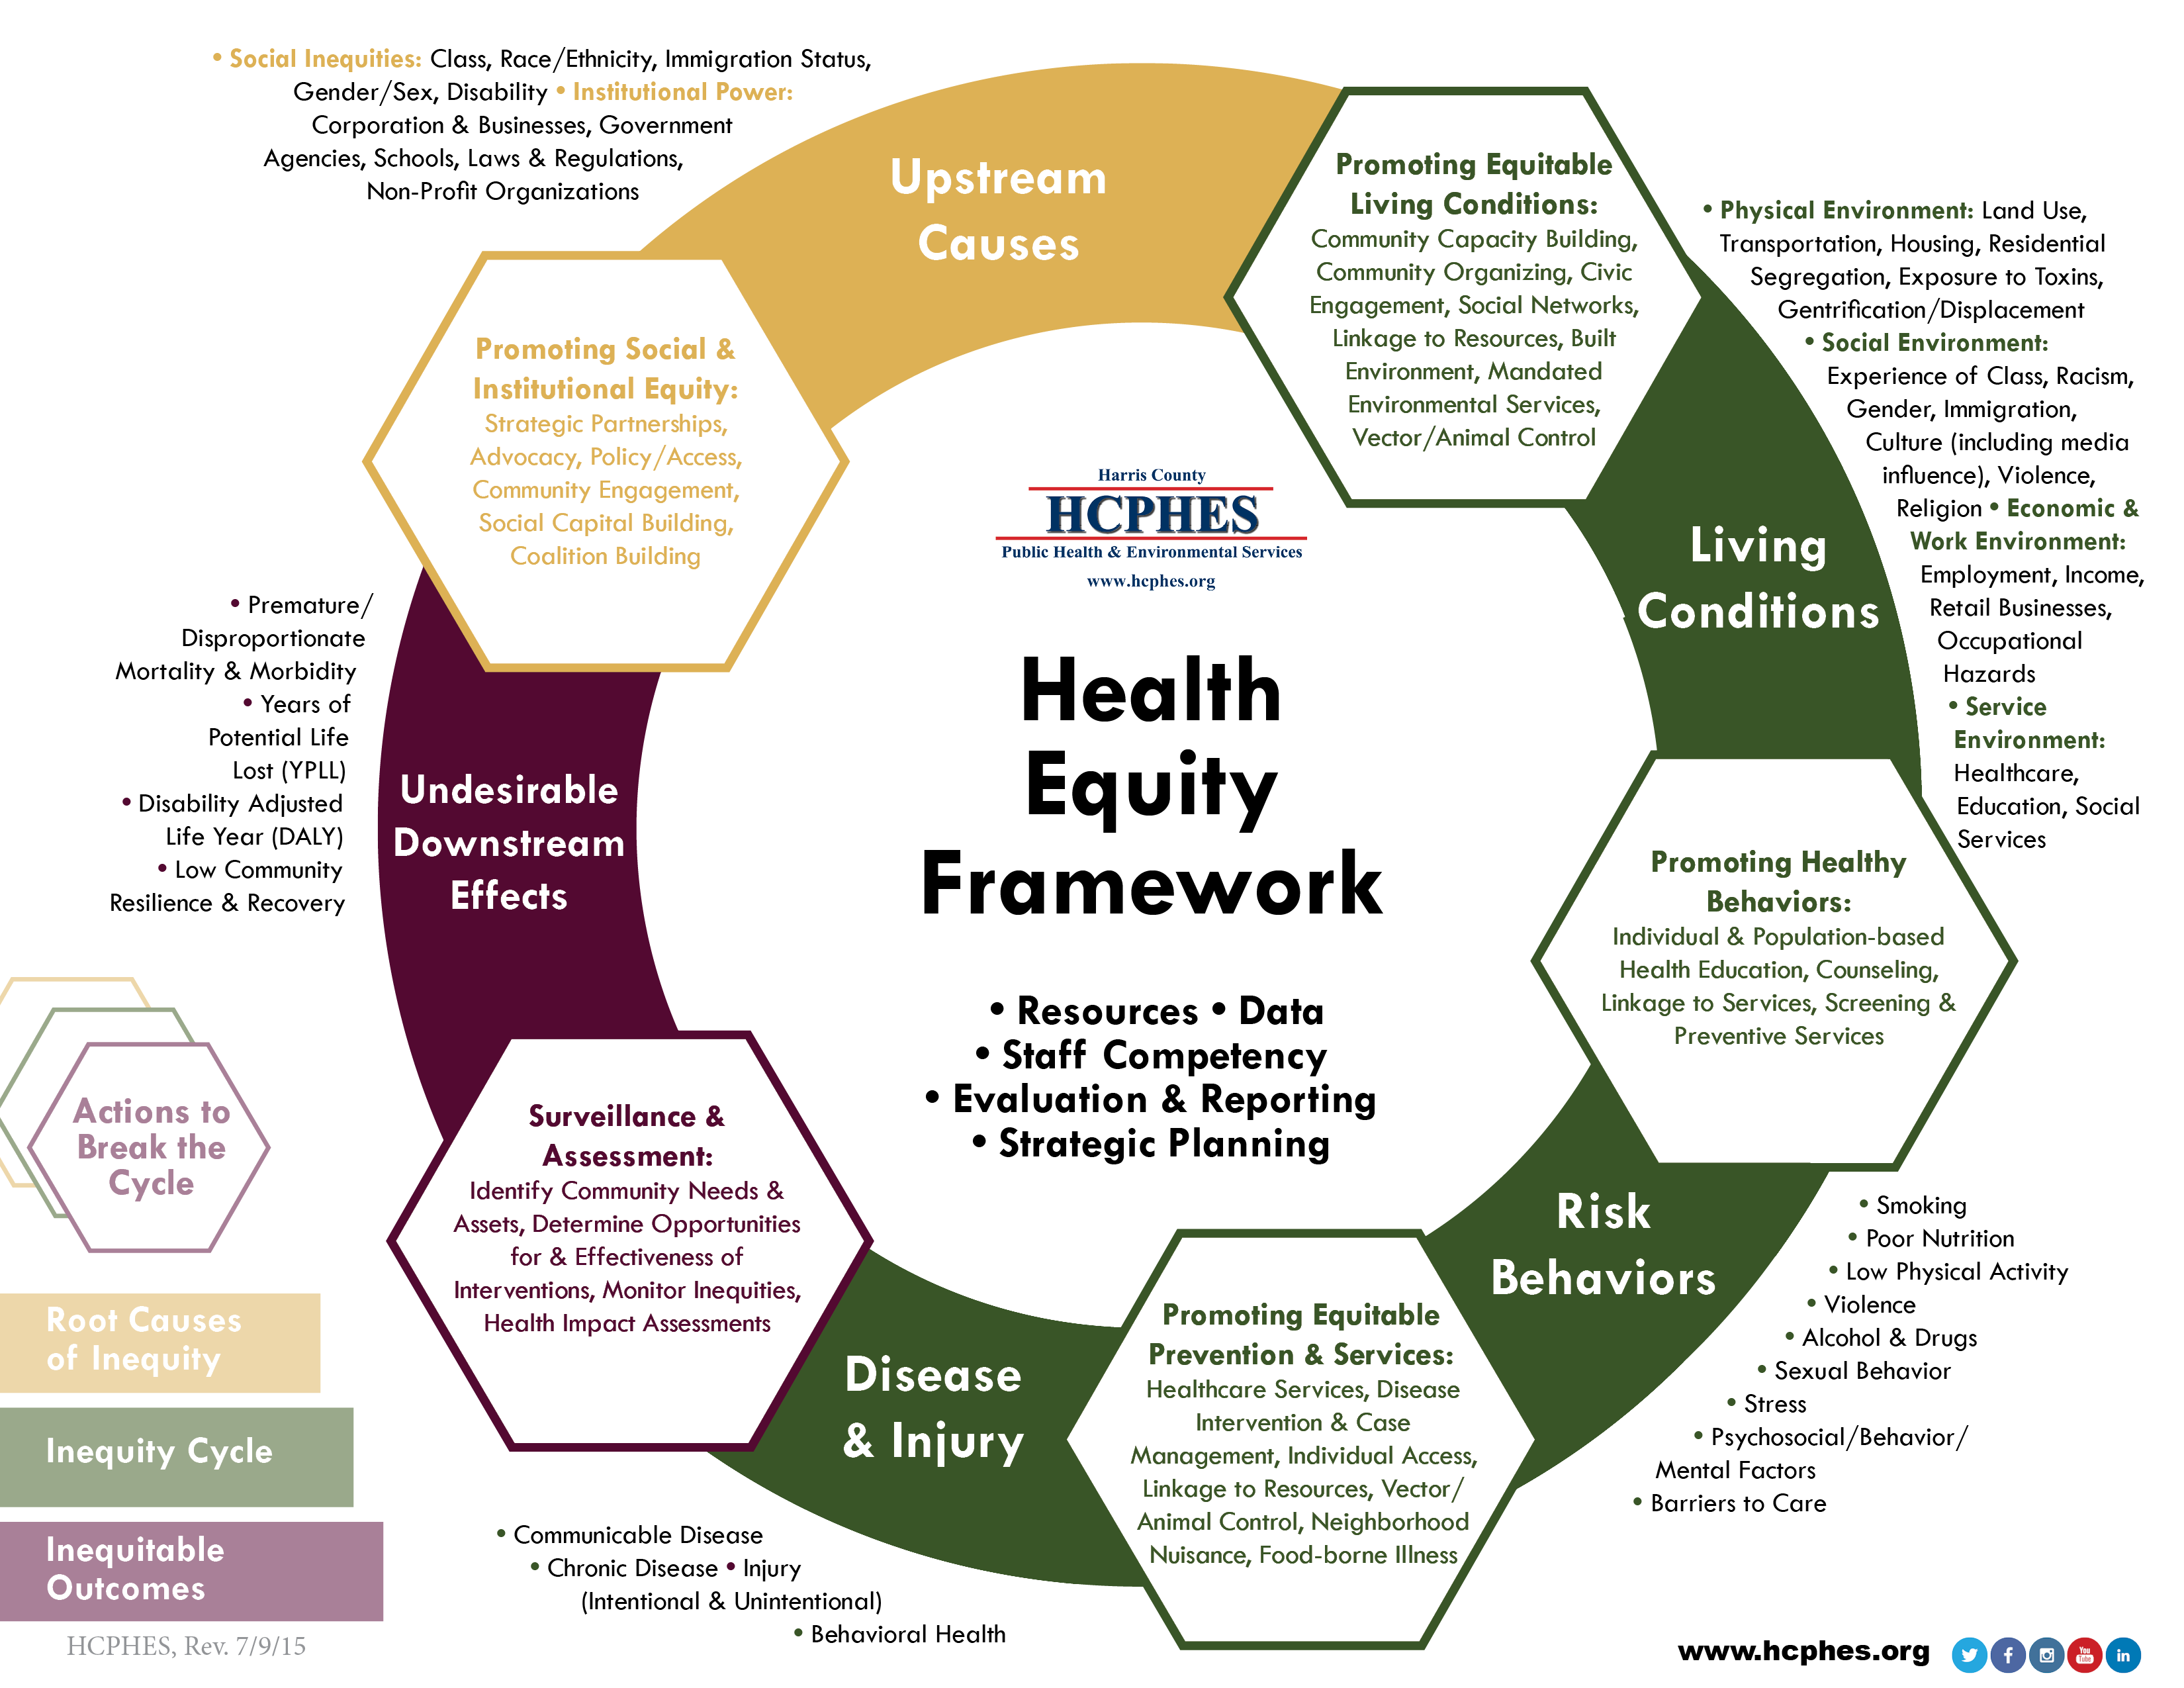 another great eg with examples of how health equity may be